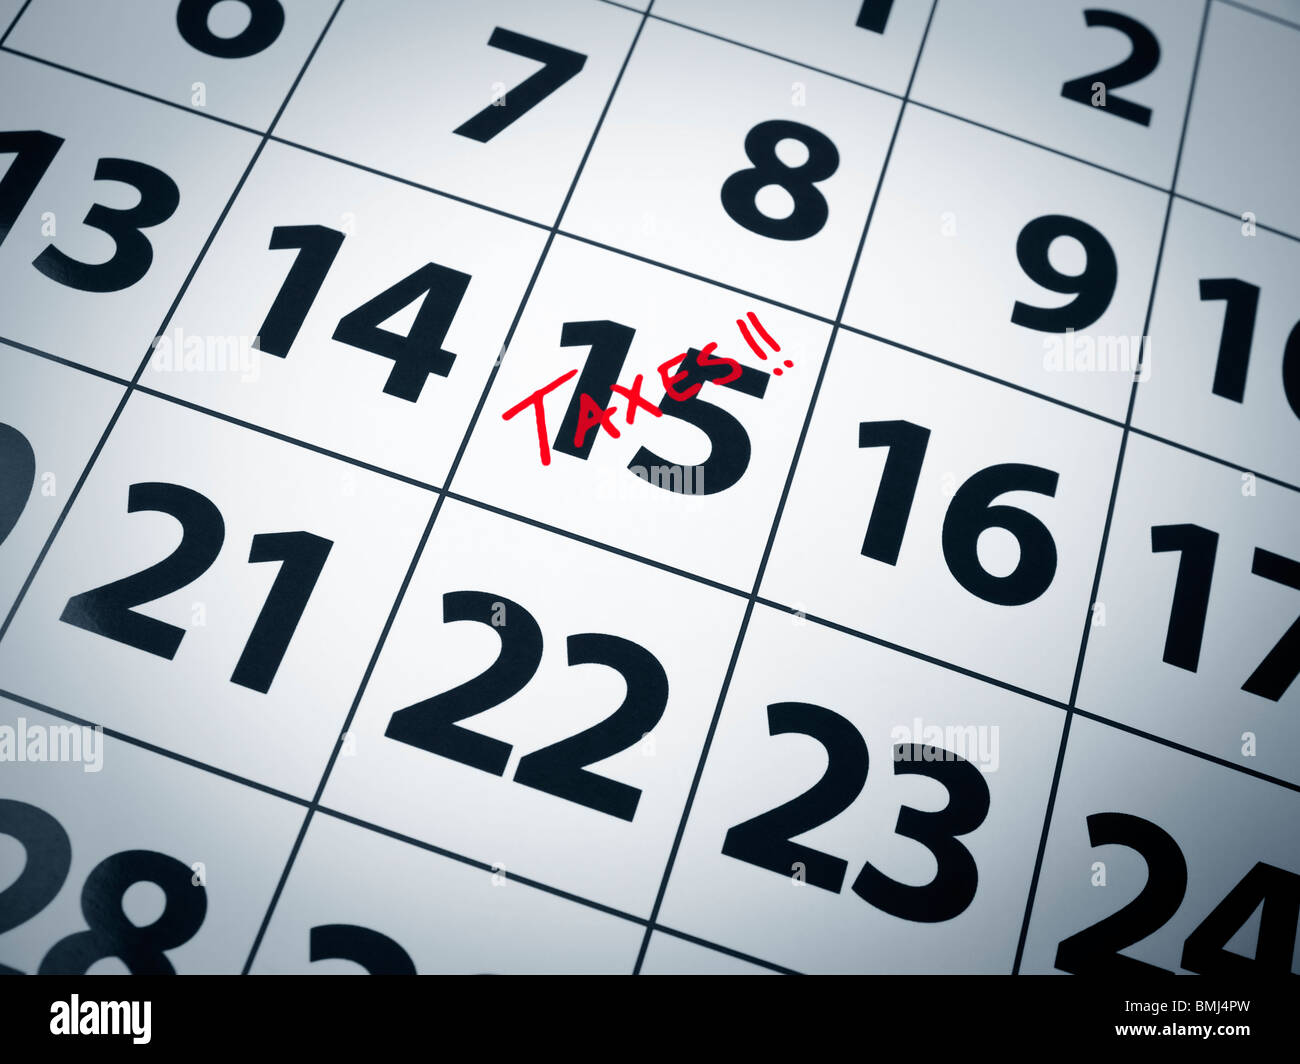 Taxes written in red on the 15th day of a calendar. - Stock Image